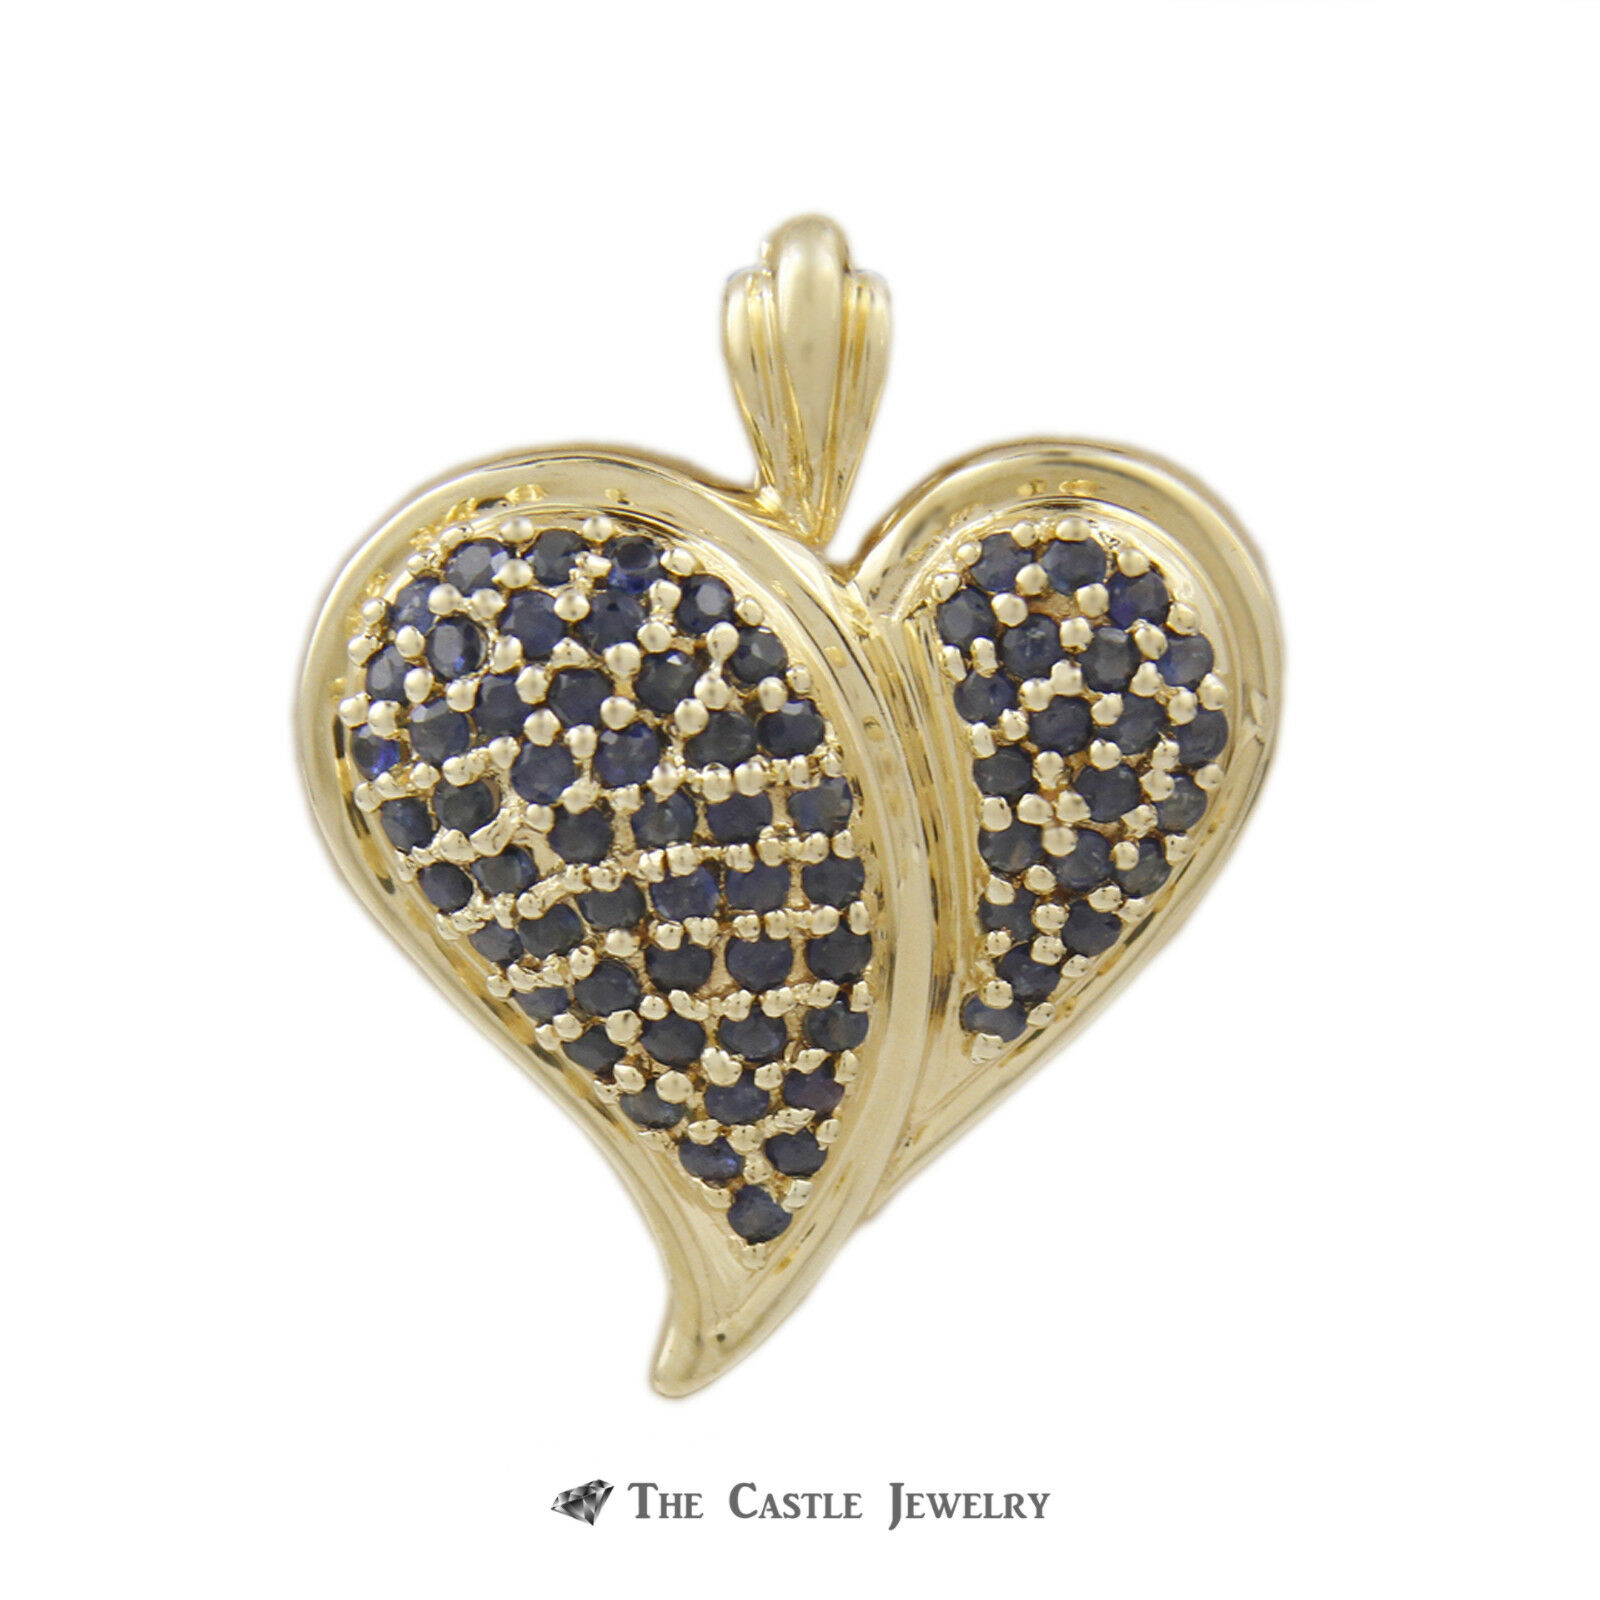 Round Sapphire Cluster Heart Pendant & Pin in 14k Yellow gold